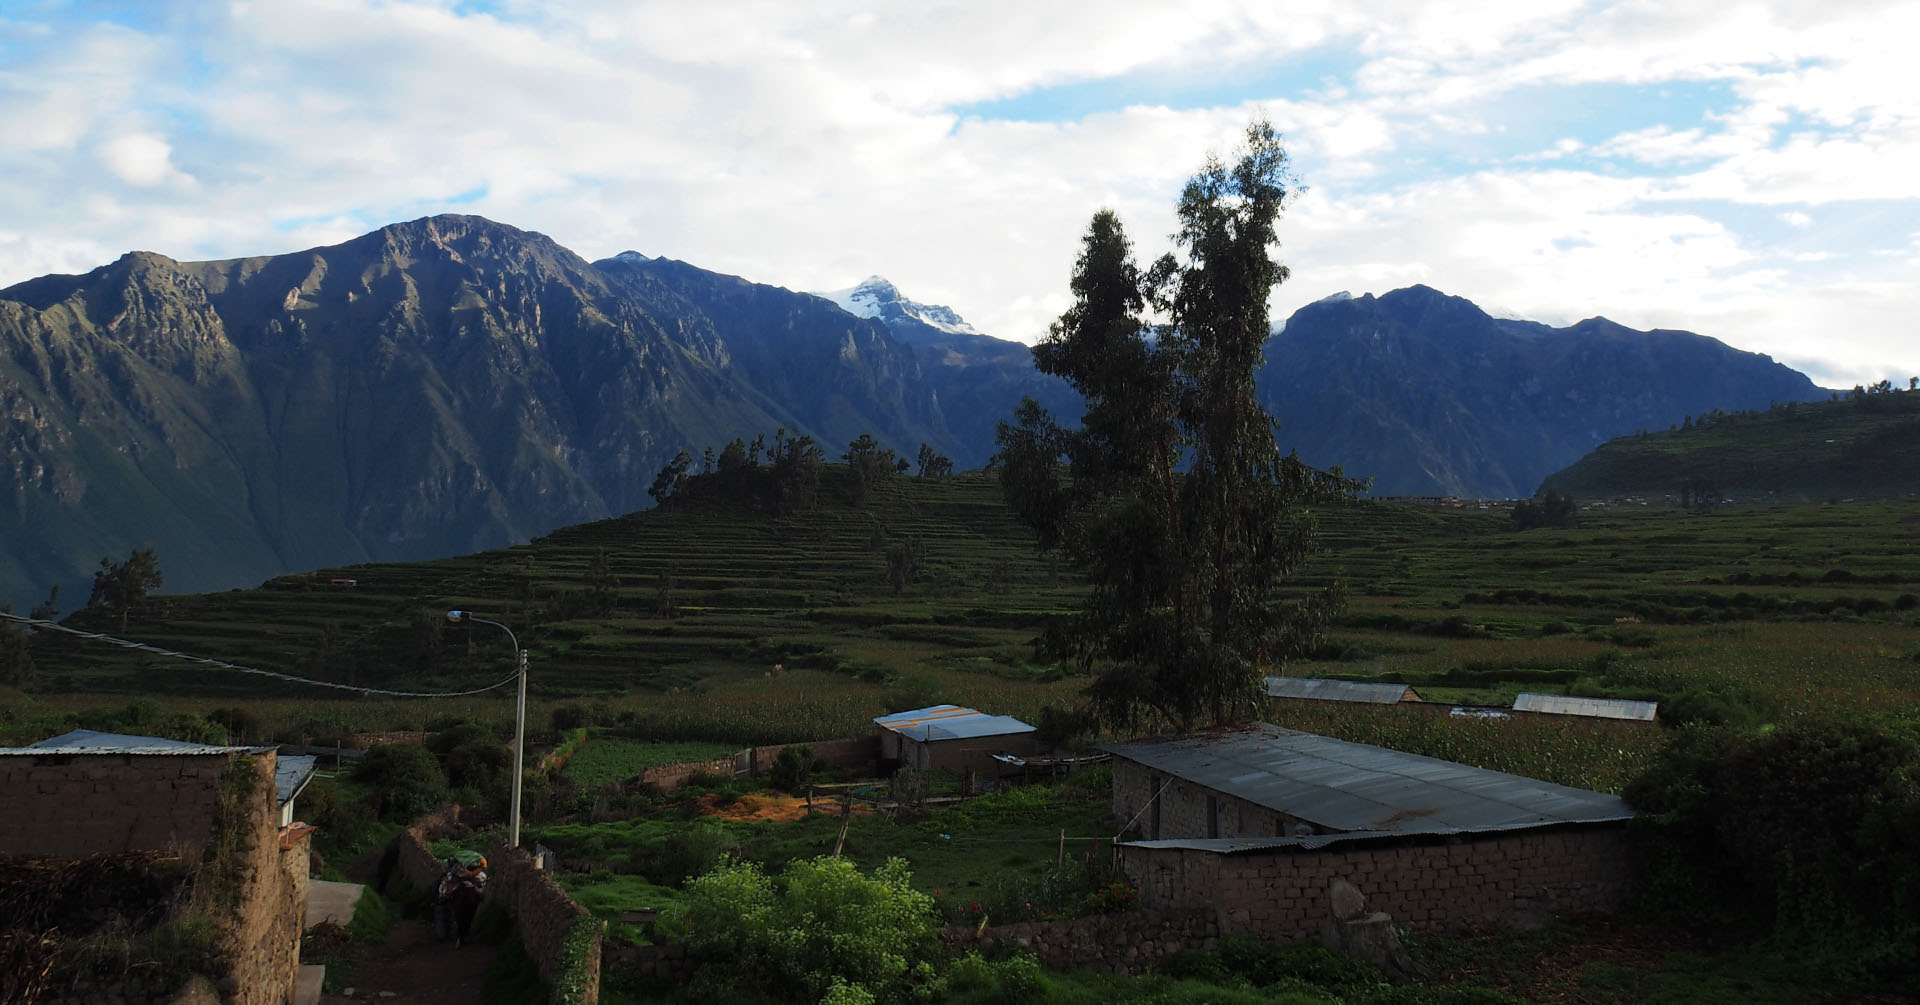 View from accommodation in Cabanaconde (Colca Canyon) - Where to stay at Colca Canyon in Peru